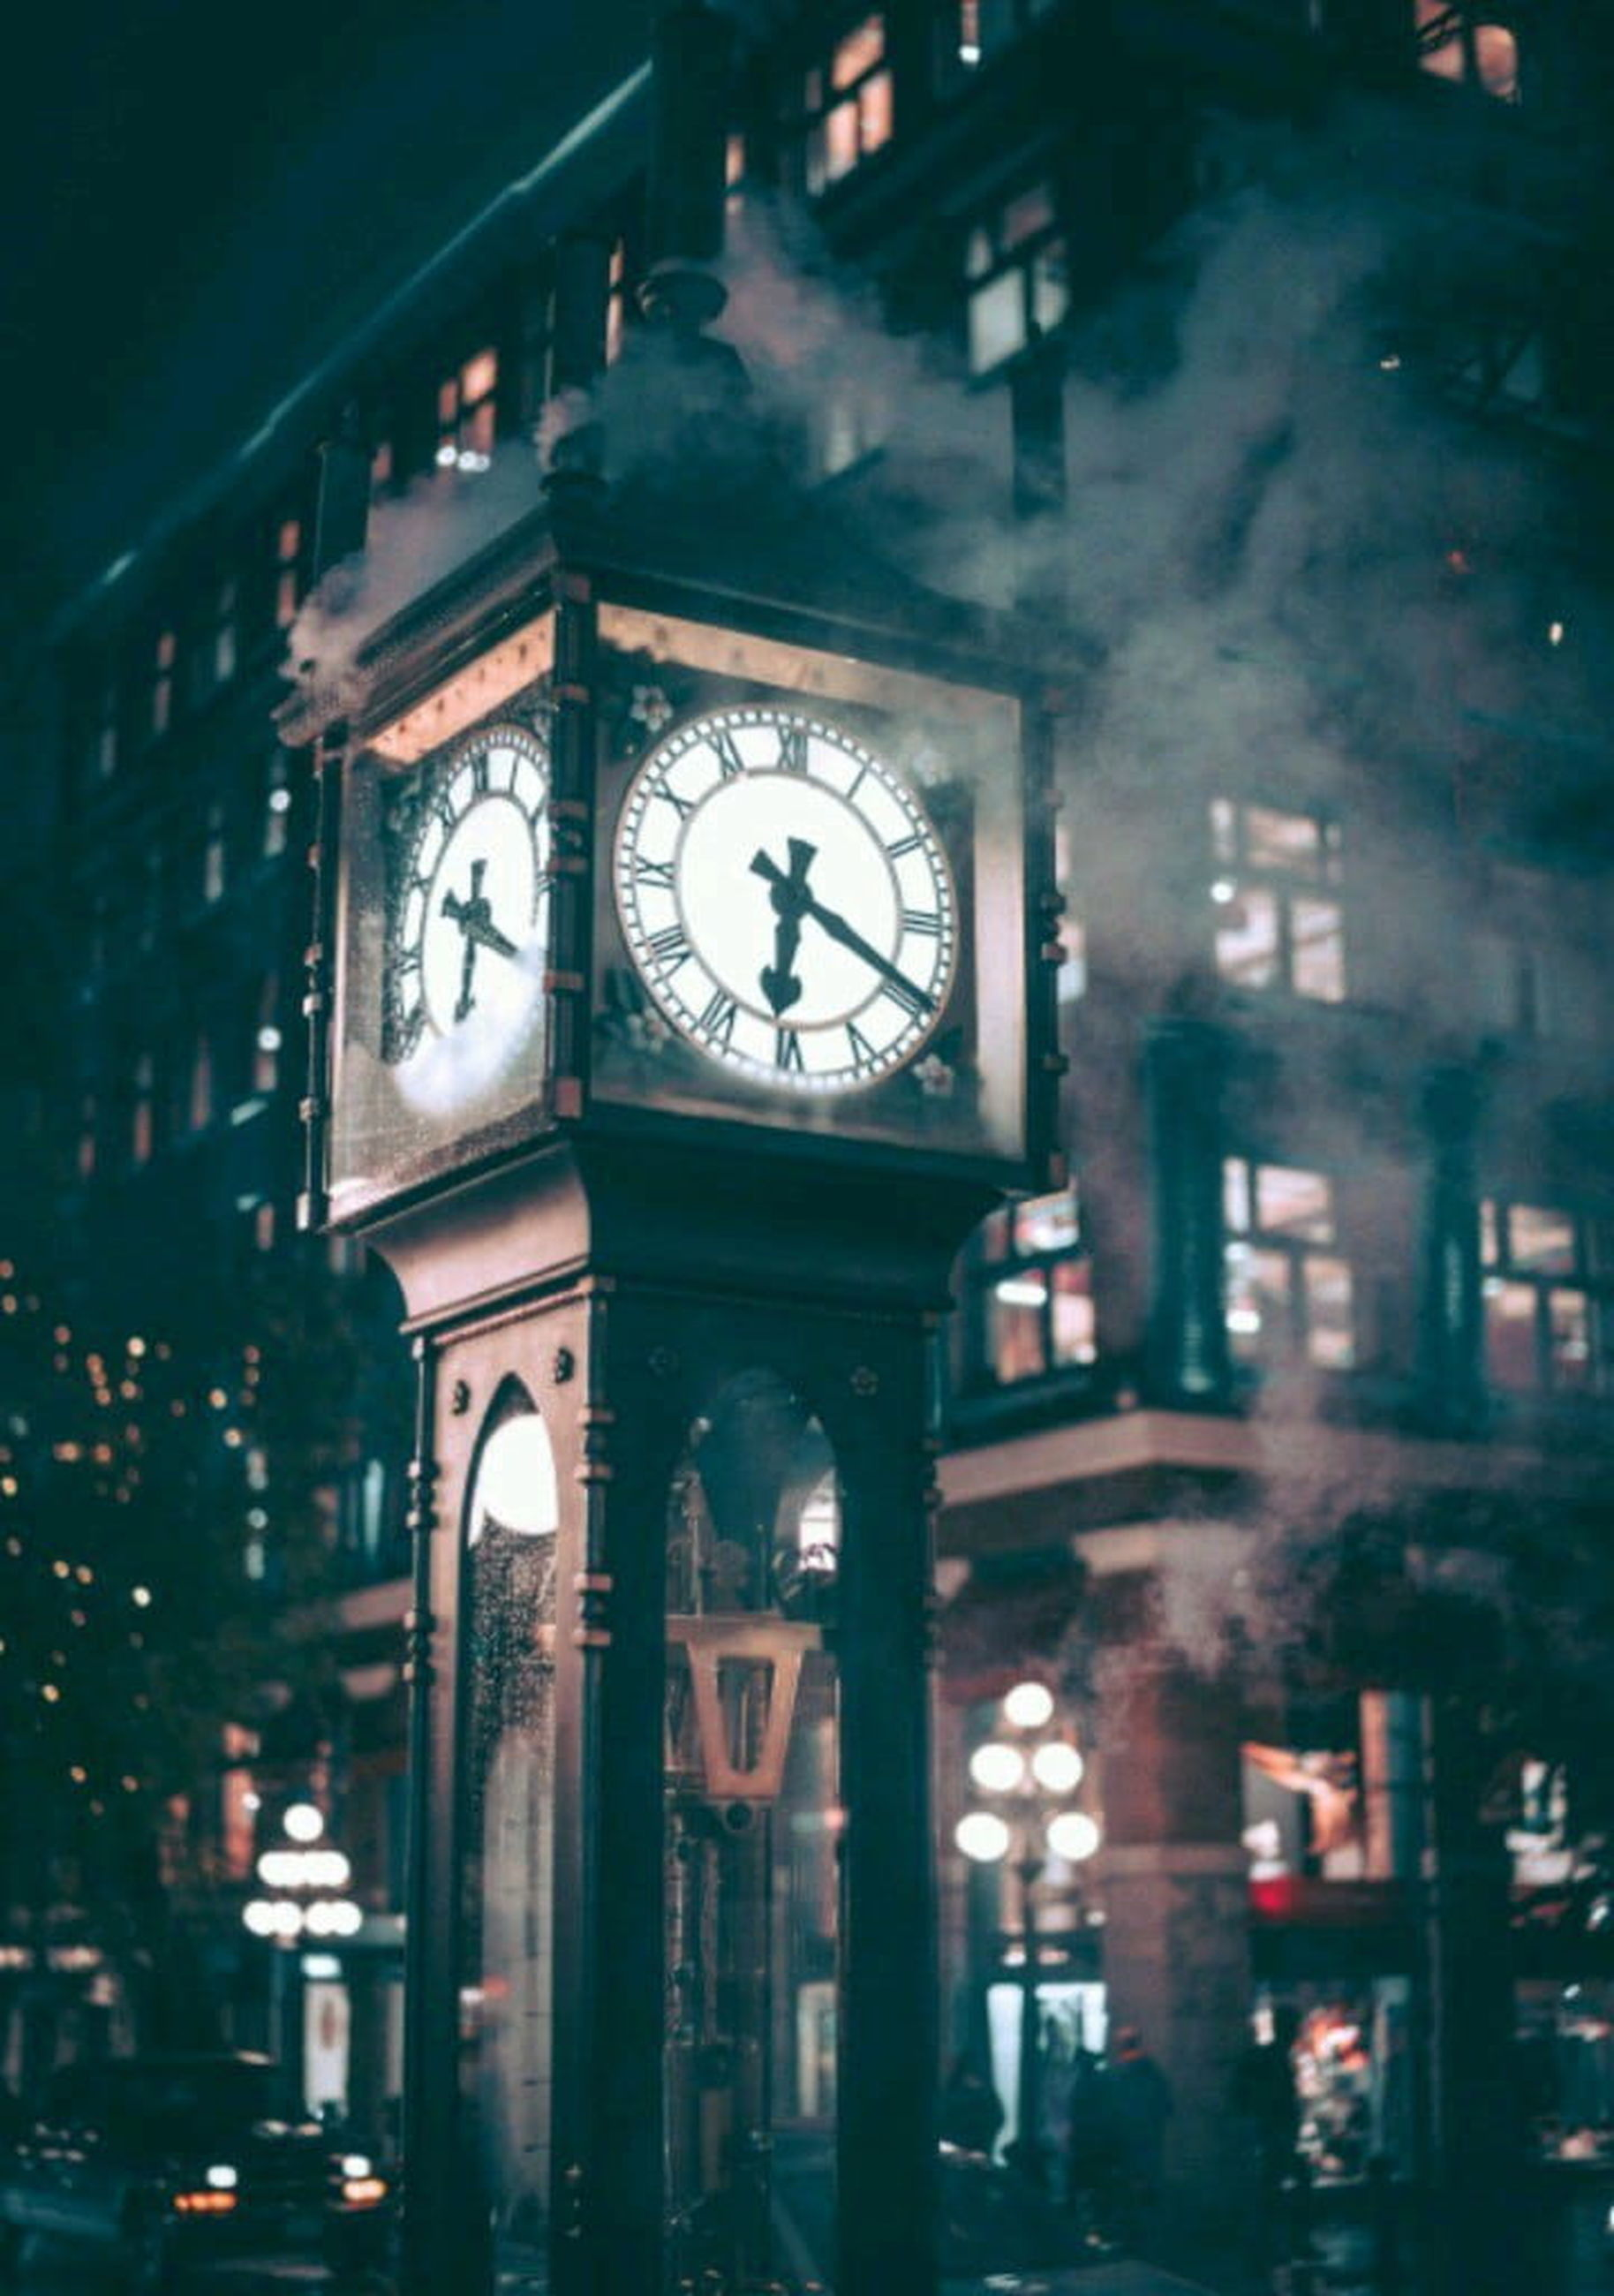 clock, time, architecture, building exterior, built structure, clock face, illuminated, night, building, no people, instrument of time, roman, clock tower, city, clock hand, outdoors, selective focus, accuracy, minute hand